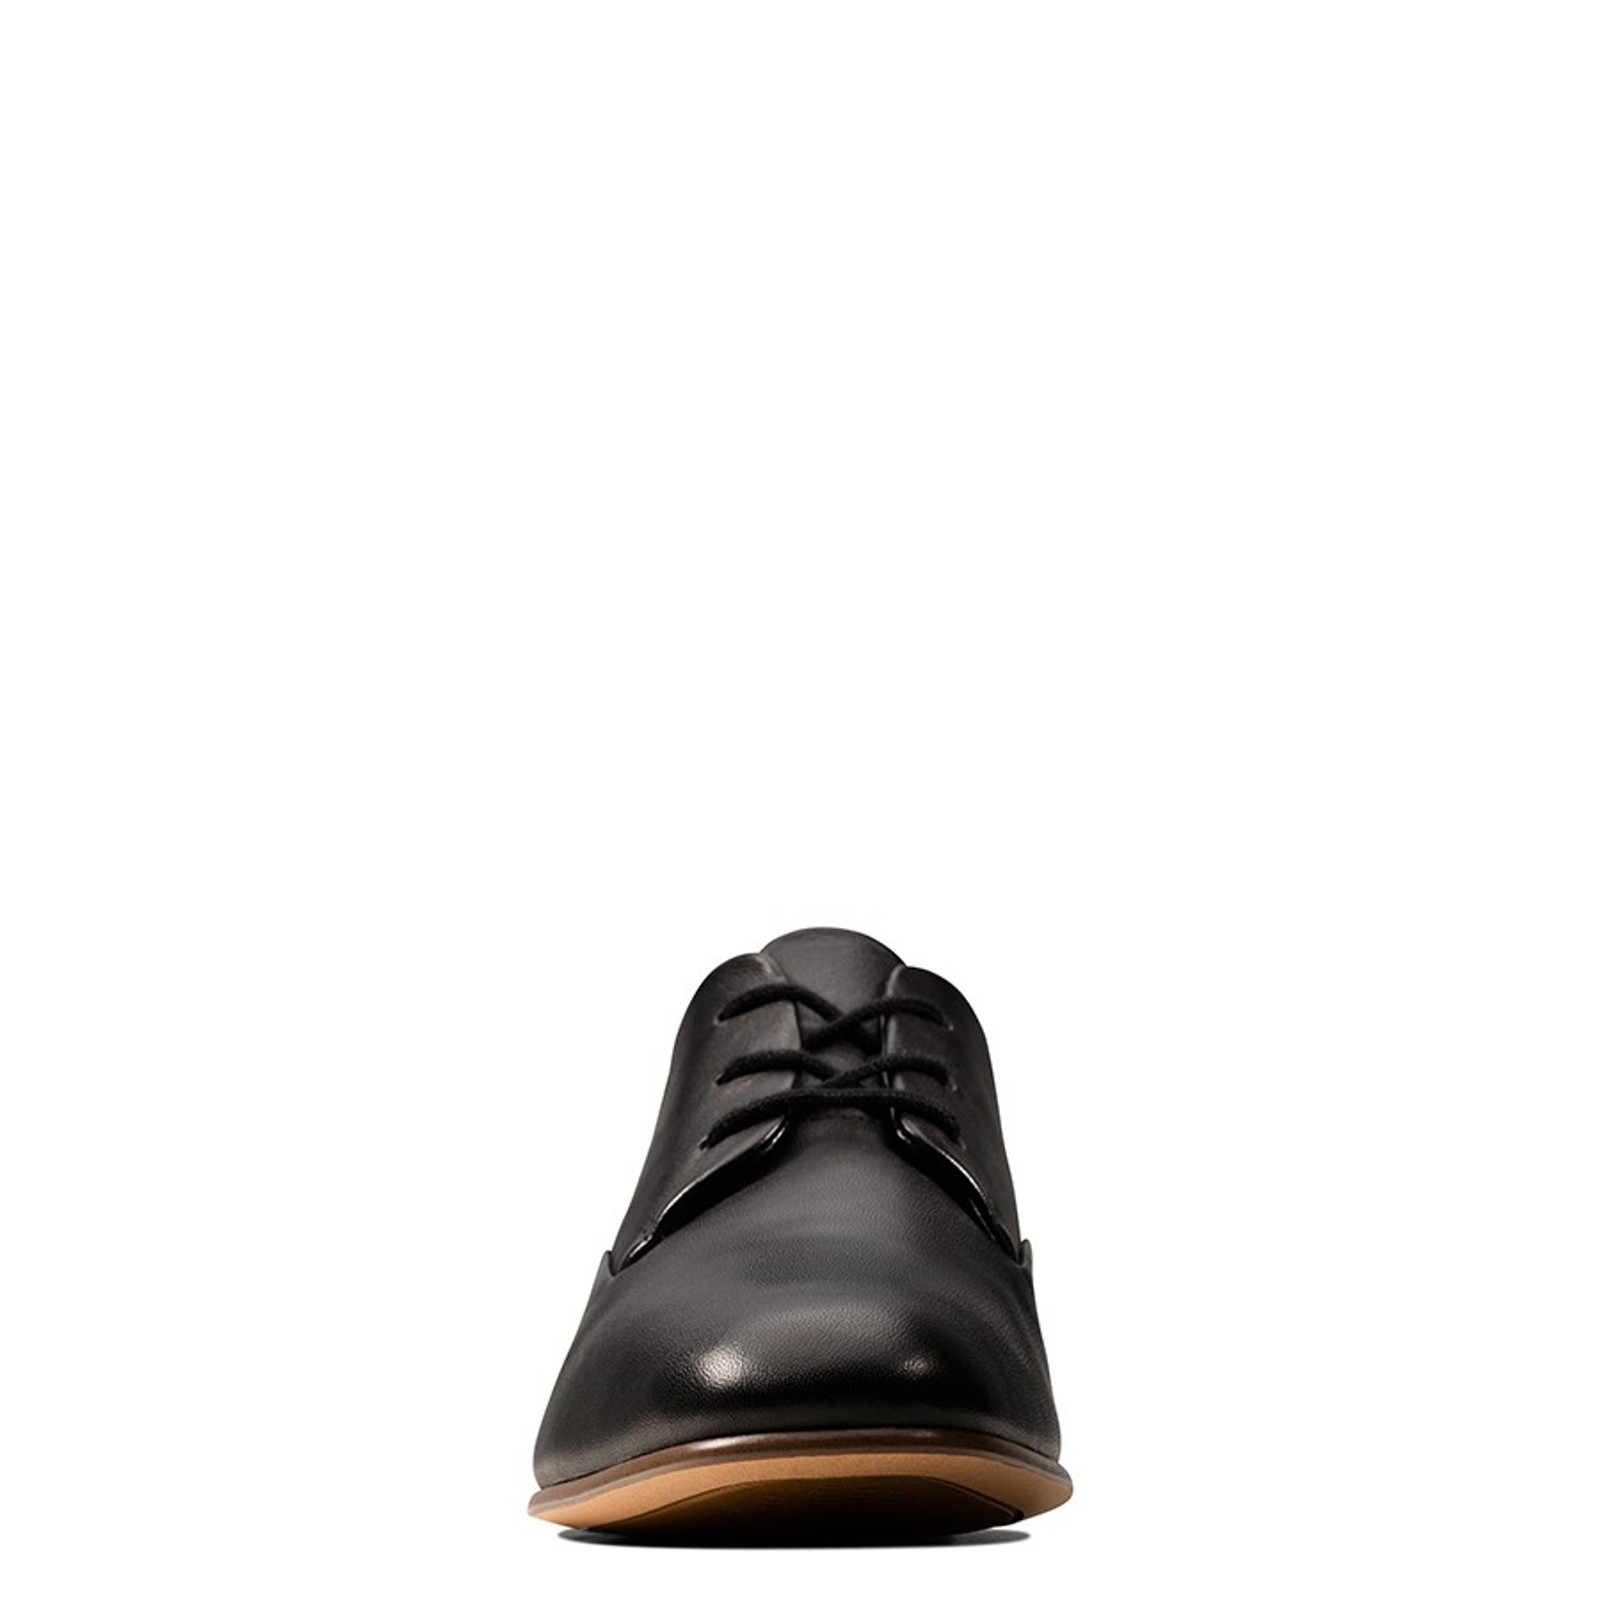 Clarks Womens PURE MIST Black Leather